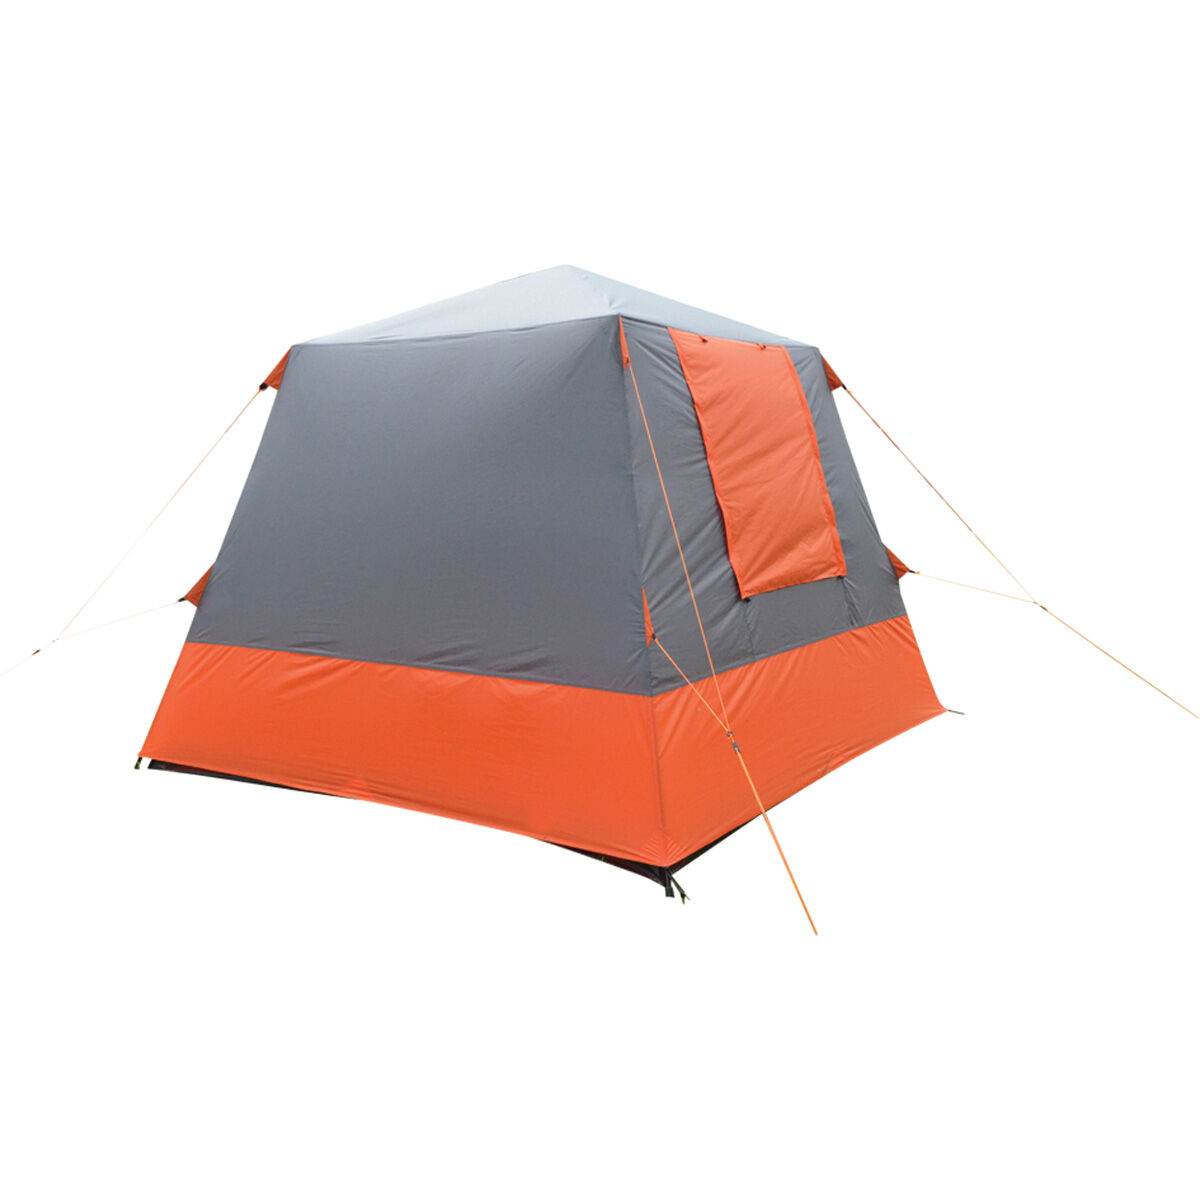 Wanderer Gibson Instant Tent 4 Person  bcf_hi-res  sc 1 st  BCF Australia & Wanderer Gibson Instant Tent 4 Person | BCF